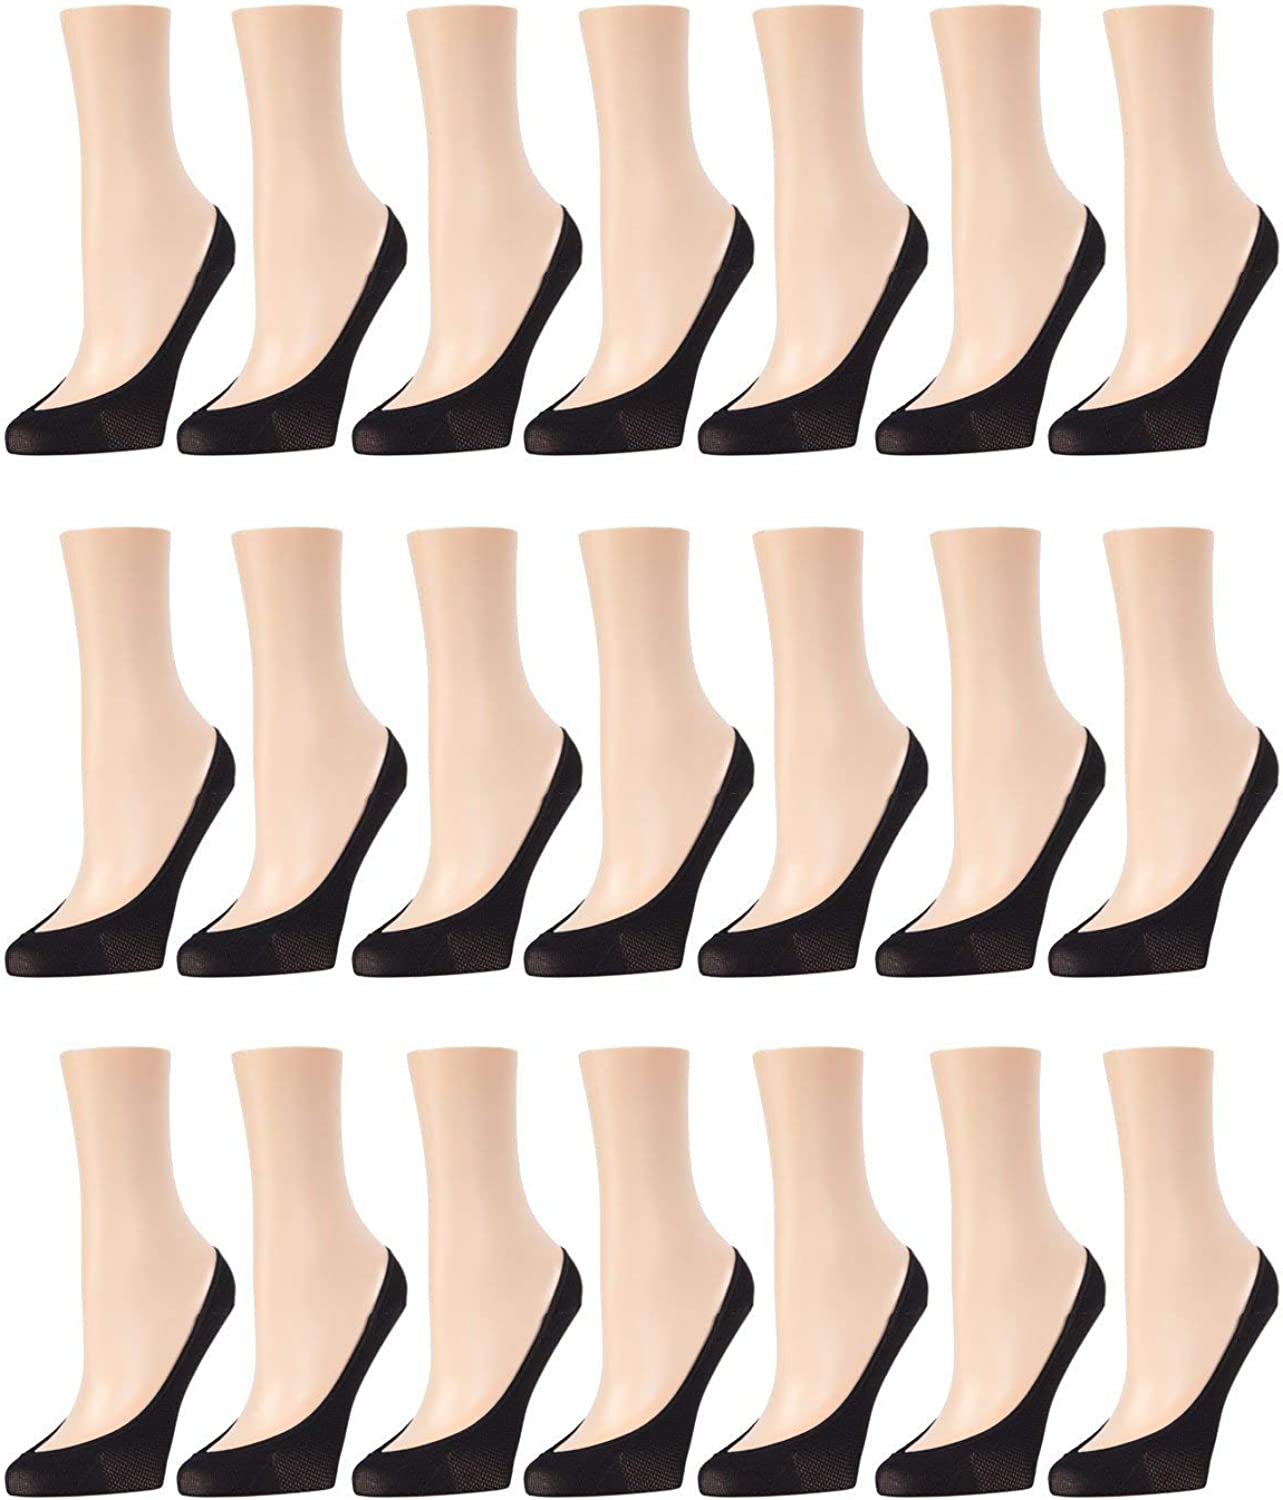 Shoe Inserts Inserts for Shoes Memoi Micro Mesh Liner 21 pair Pack